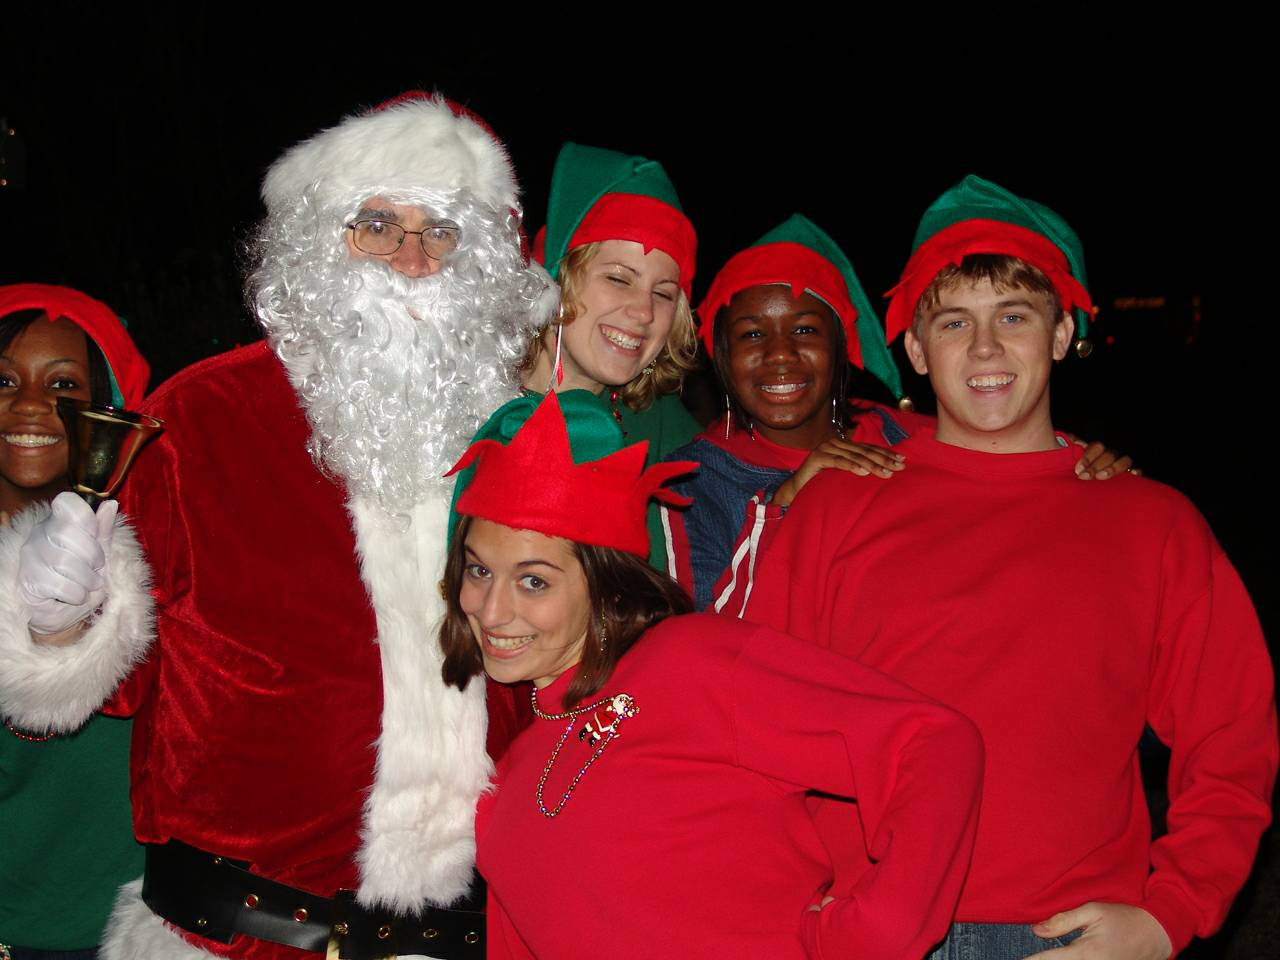 Carolinas Key Club members join Santa Claus to bring joy to the residents of Boys and Girls Homes.